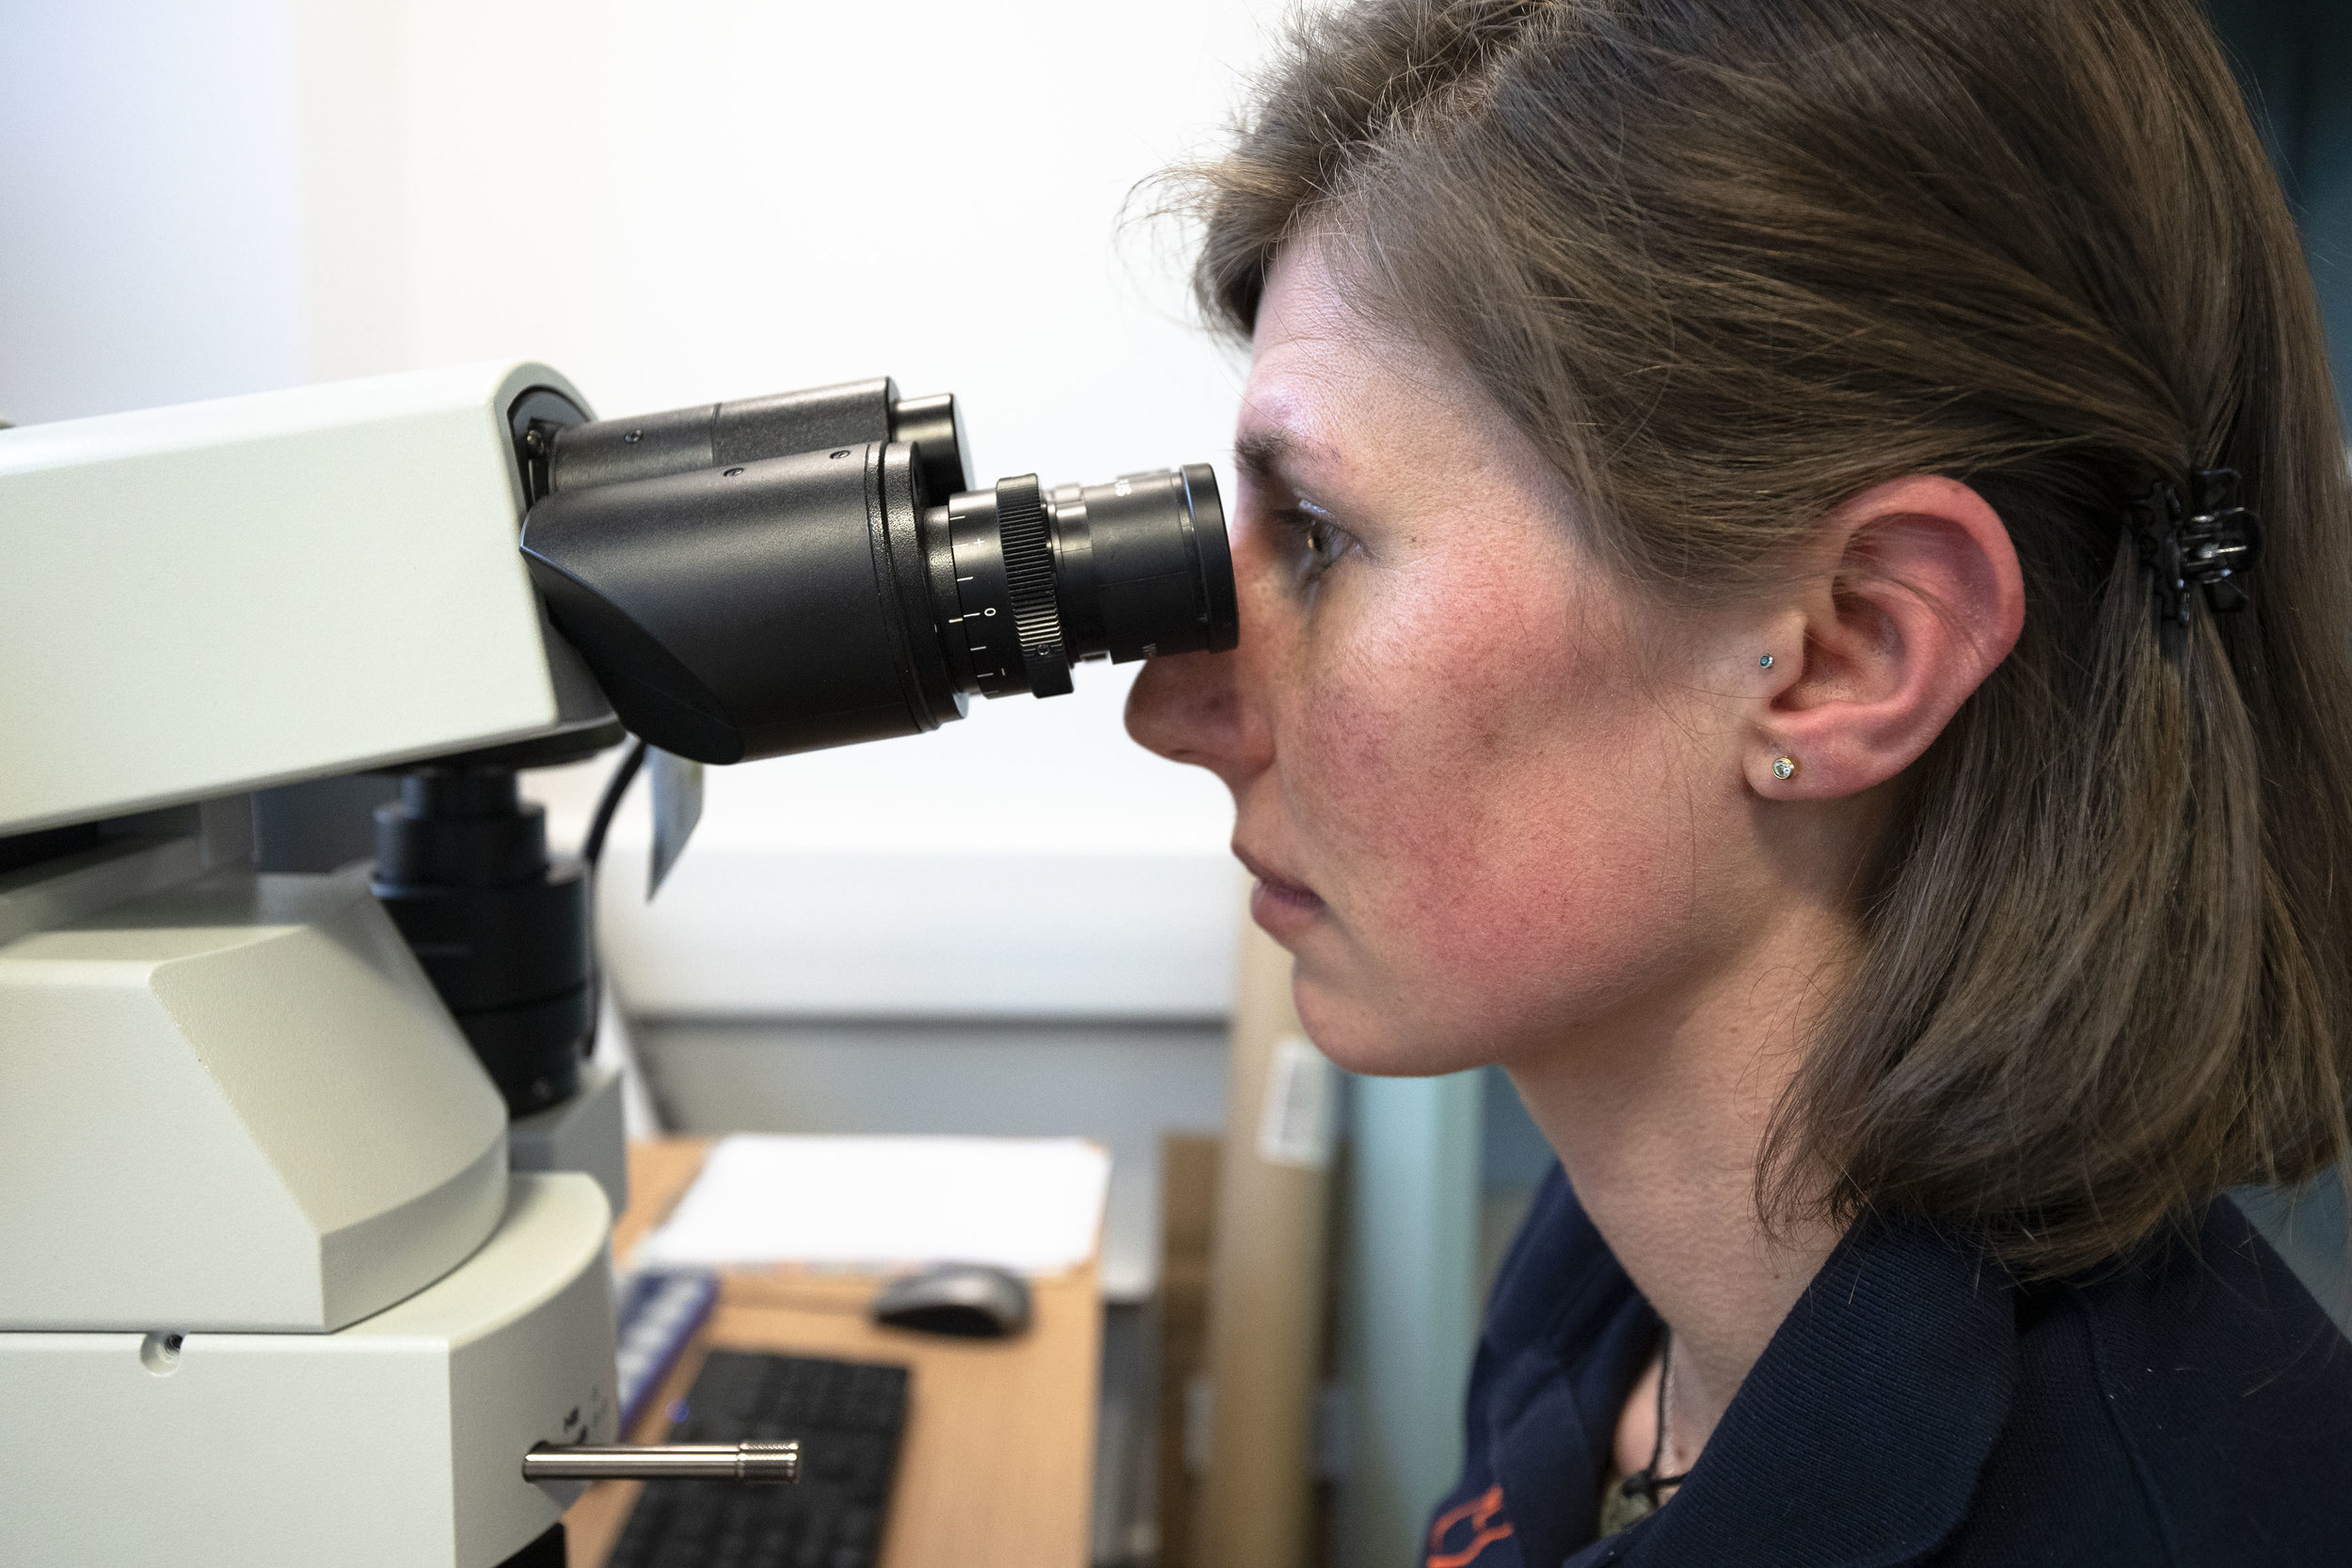 Scientist examining the slide under the microscope